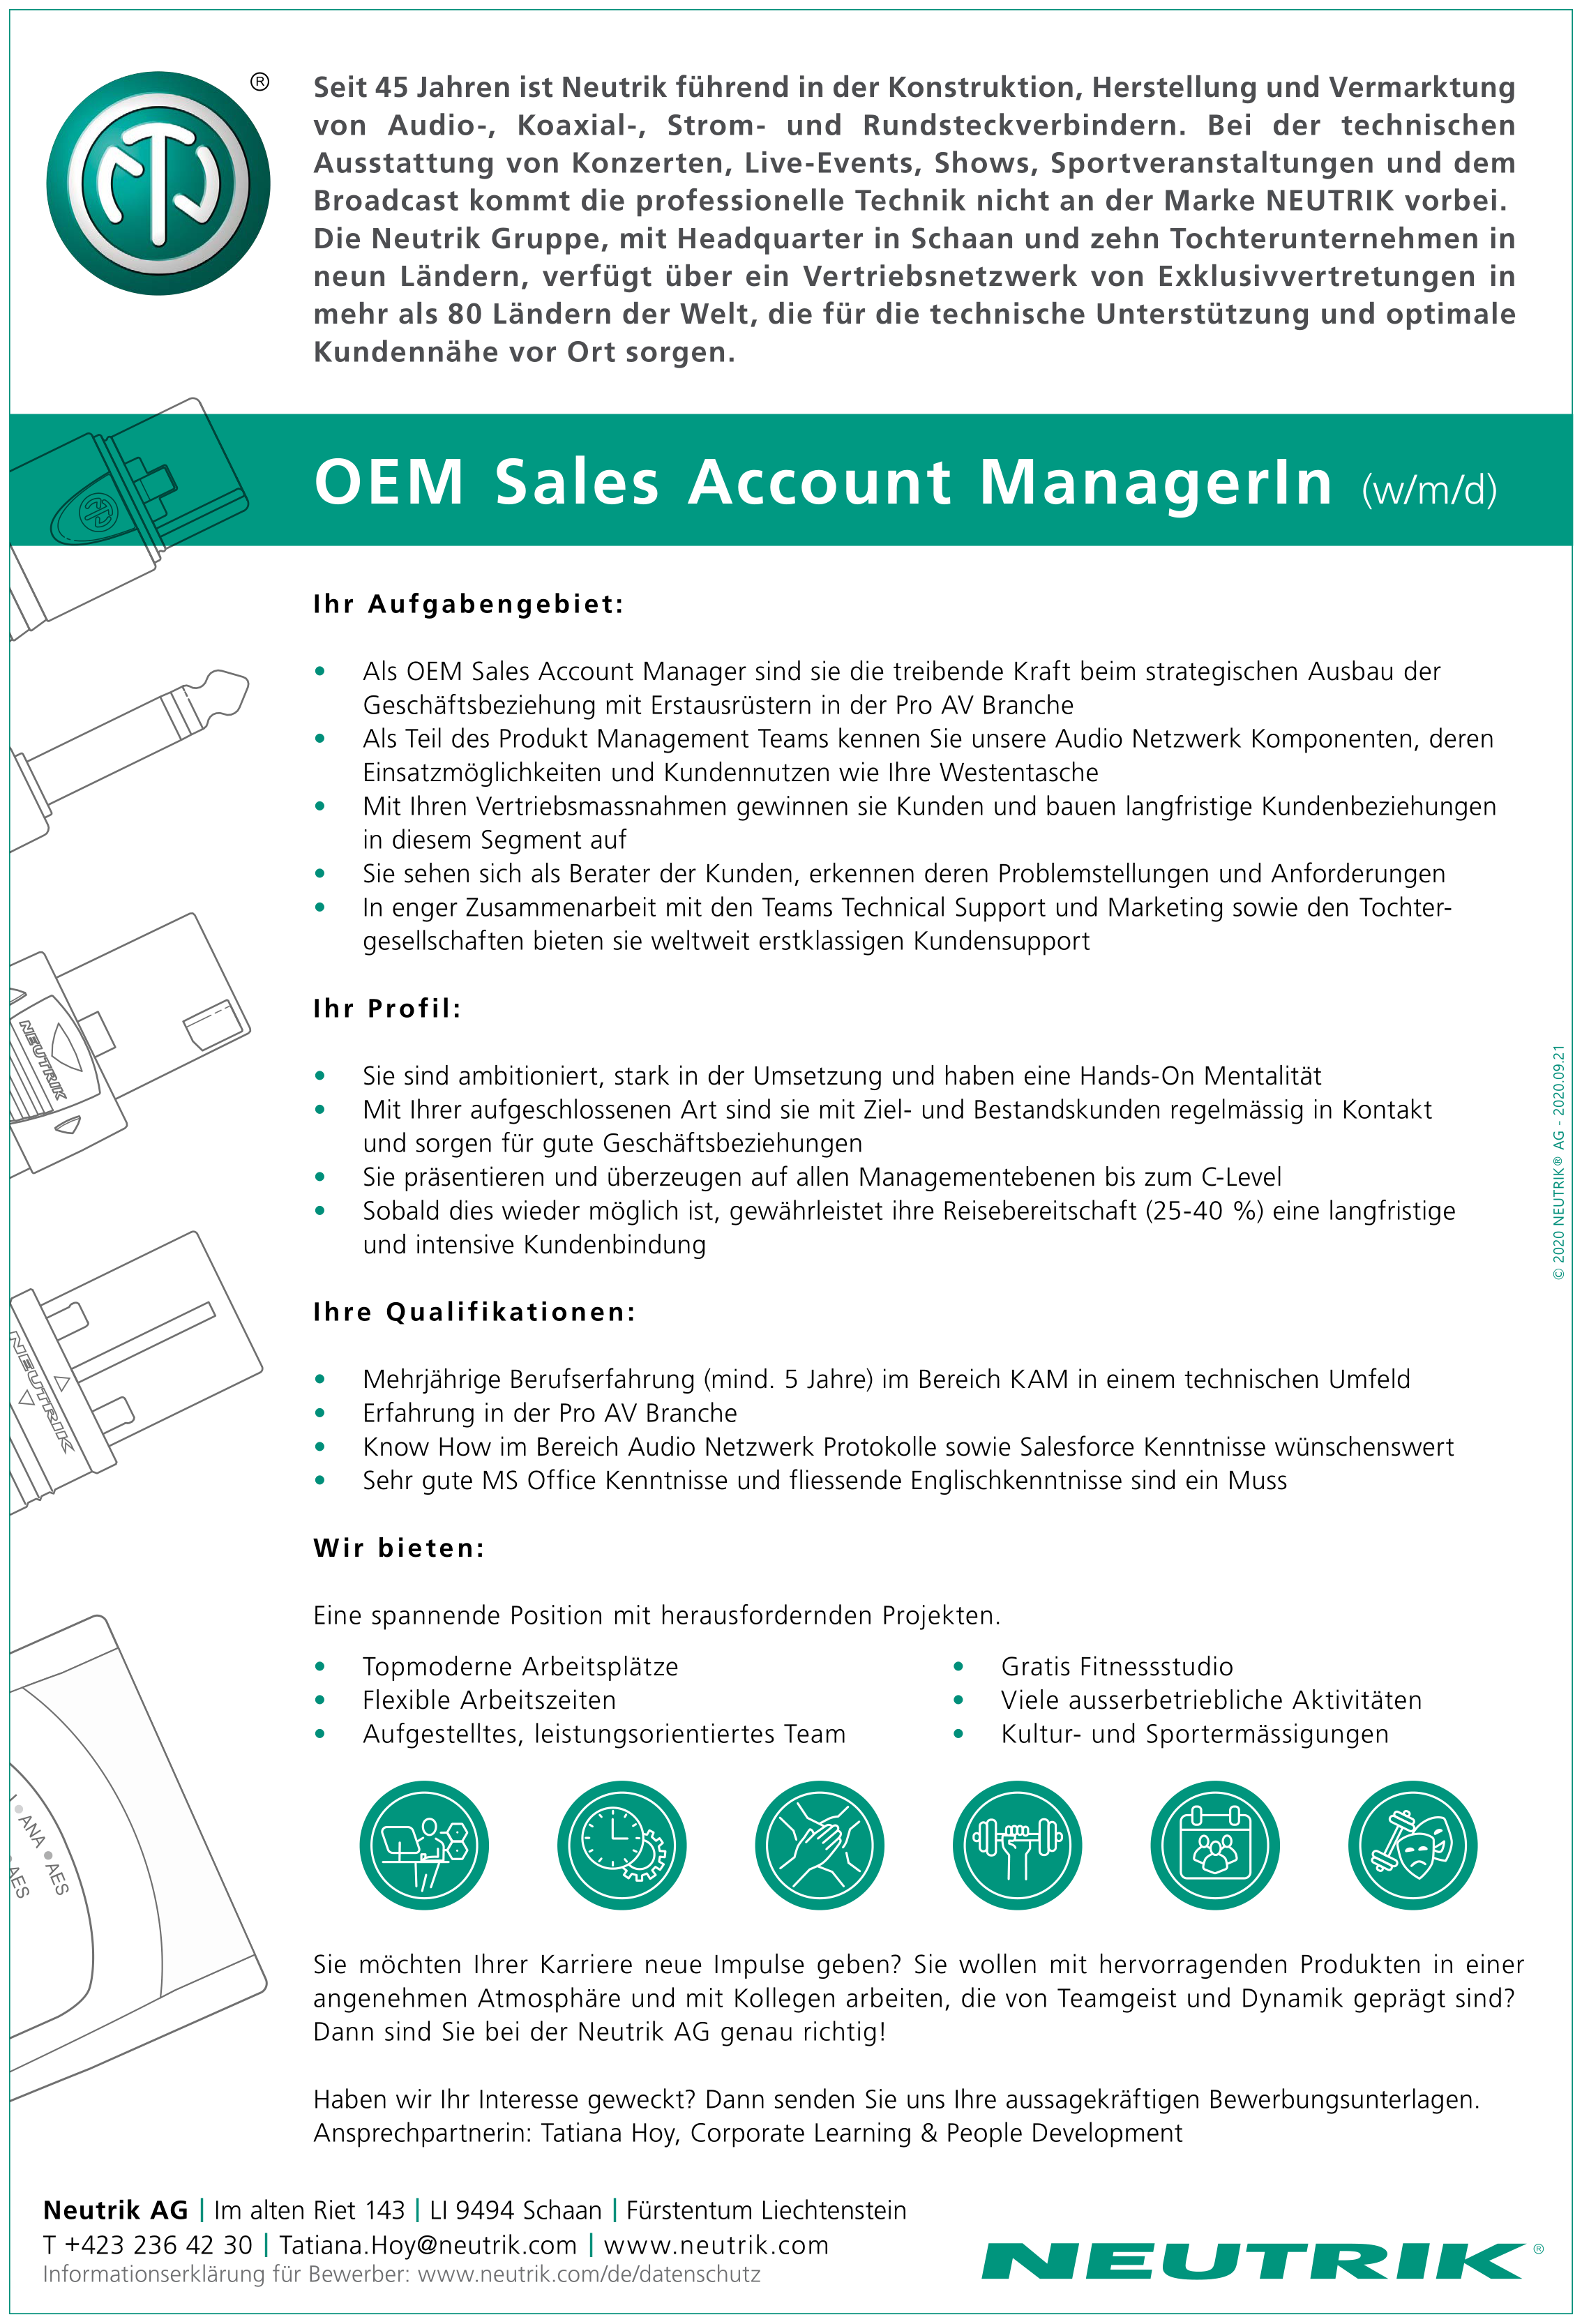 OEM Sales Account ManagerIn (w/m/d)